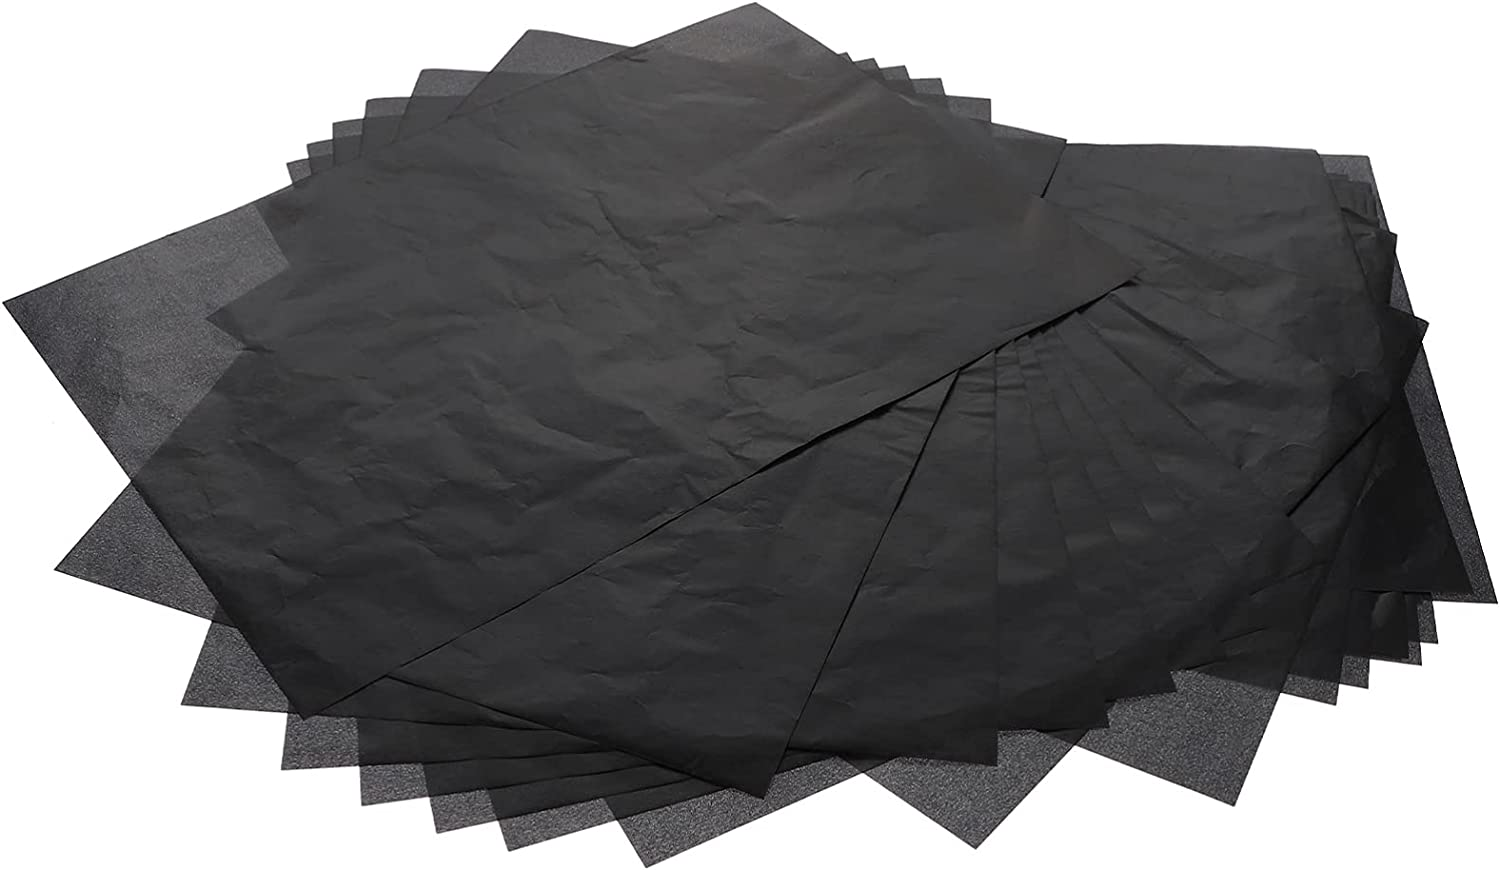 HEALLILY 25 Sheets Limited Special Price Carbon New products world's highest quality popular Black Graphite Paper Tran